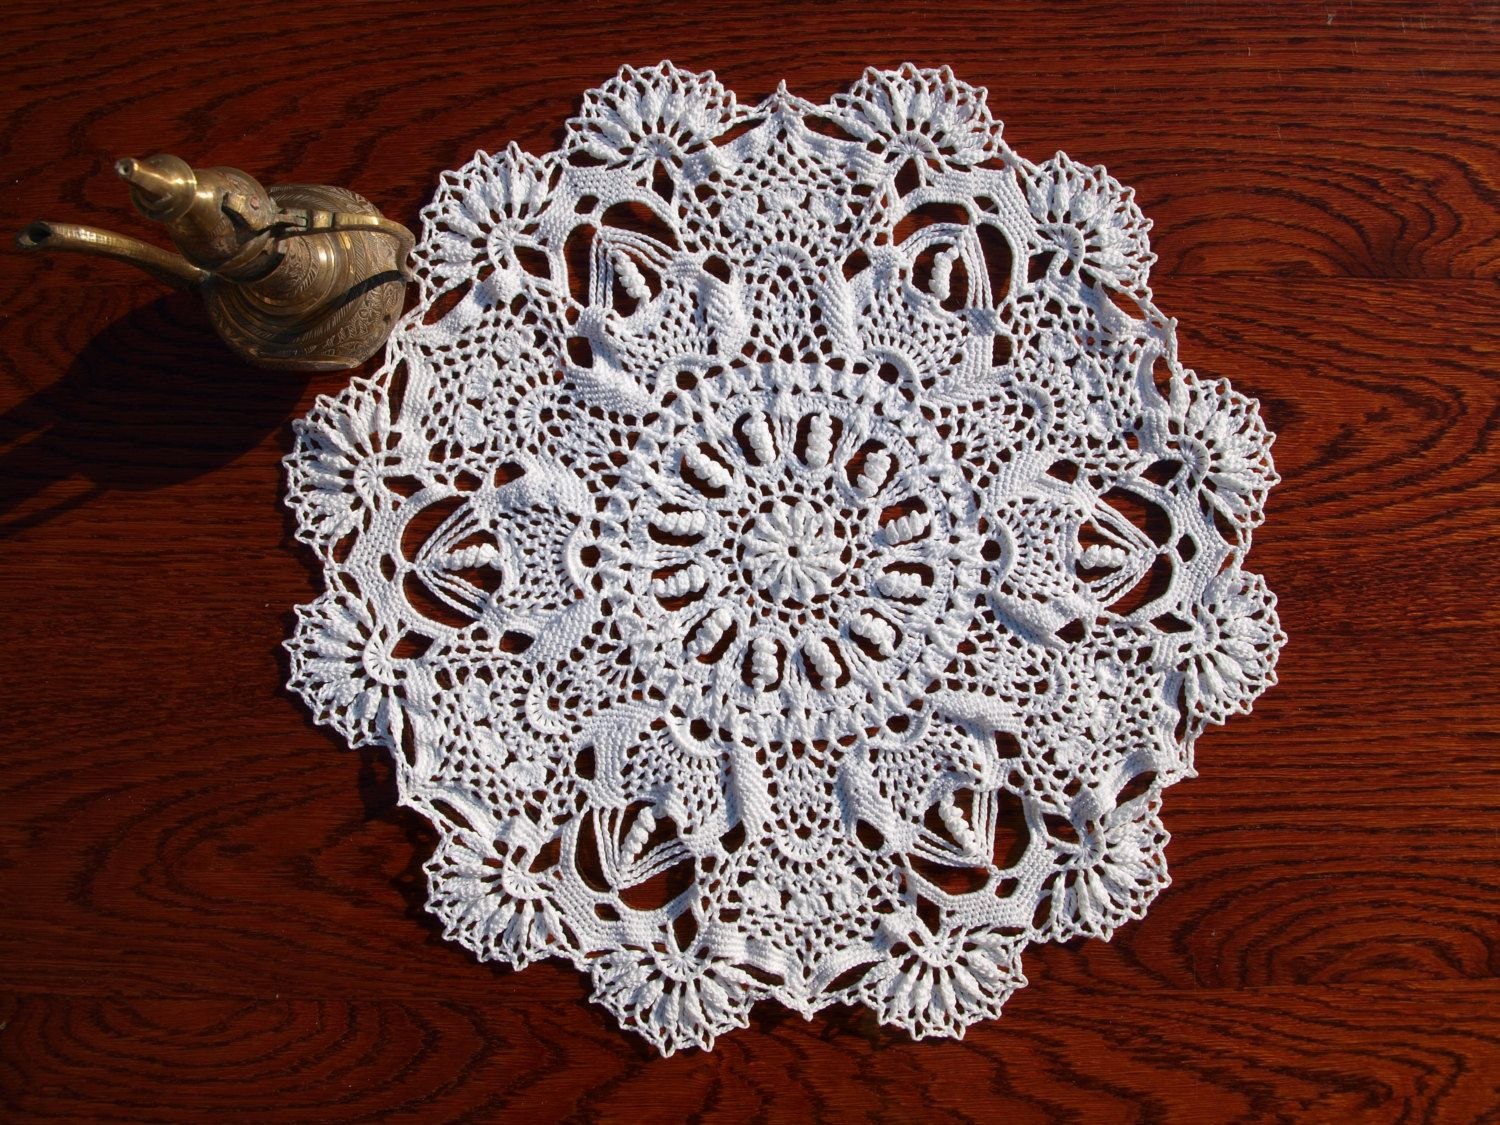 crochet hand made doily inches diameter lace white round victorian style accent table home decor doilies usd navy blue console circle marble coffee trestle dining pottery barn